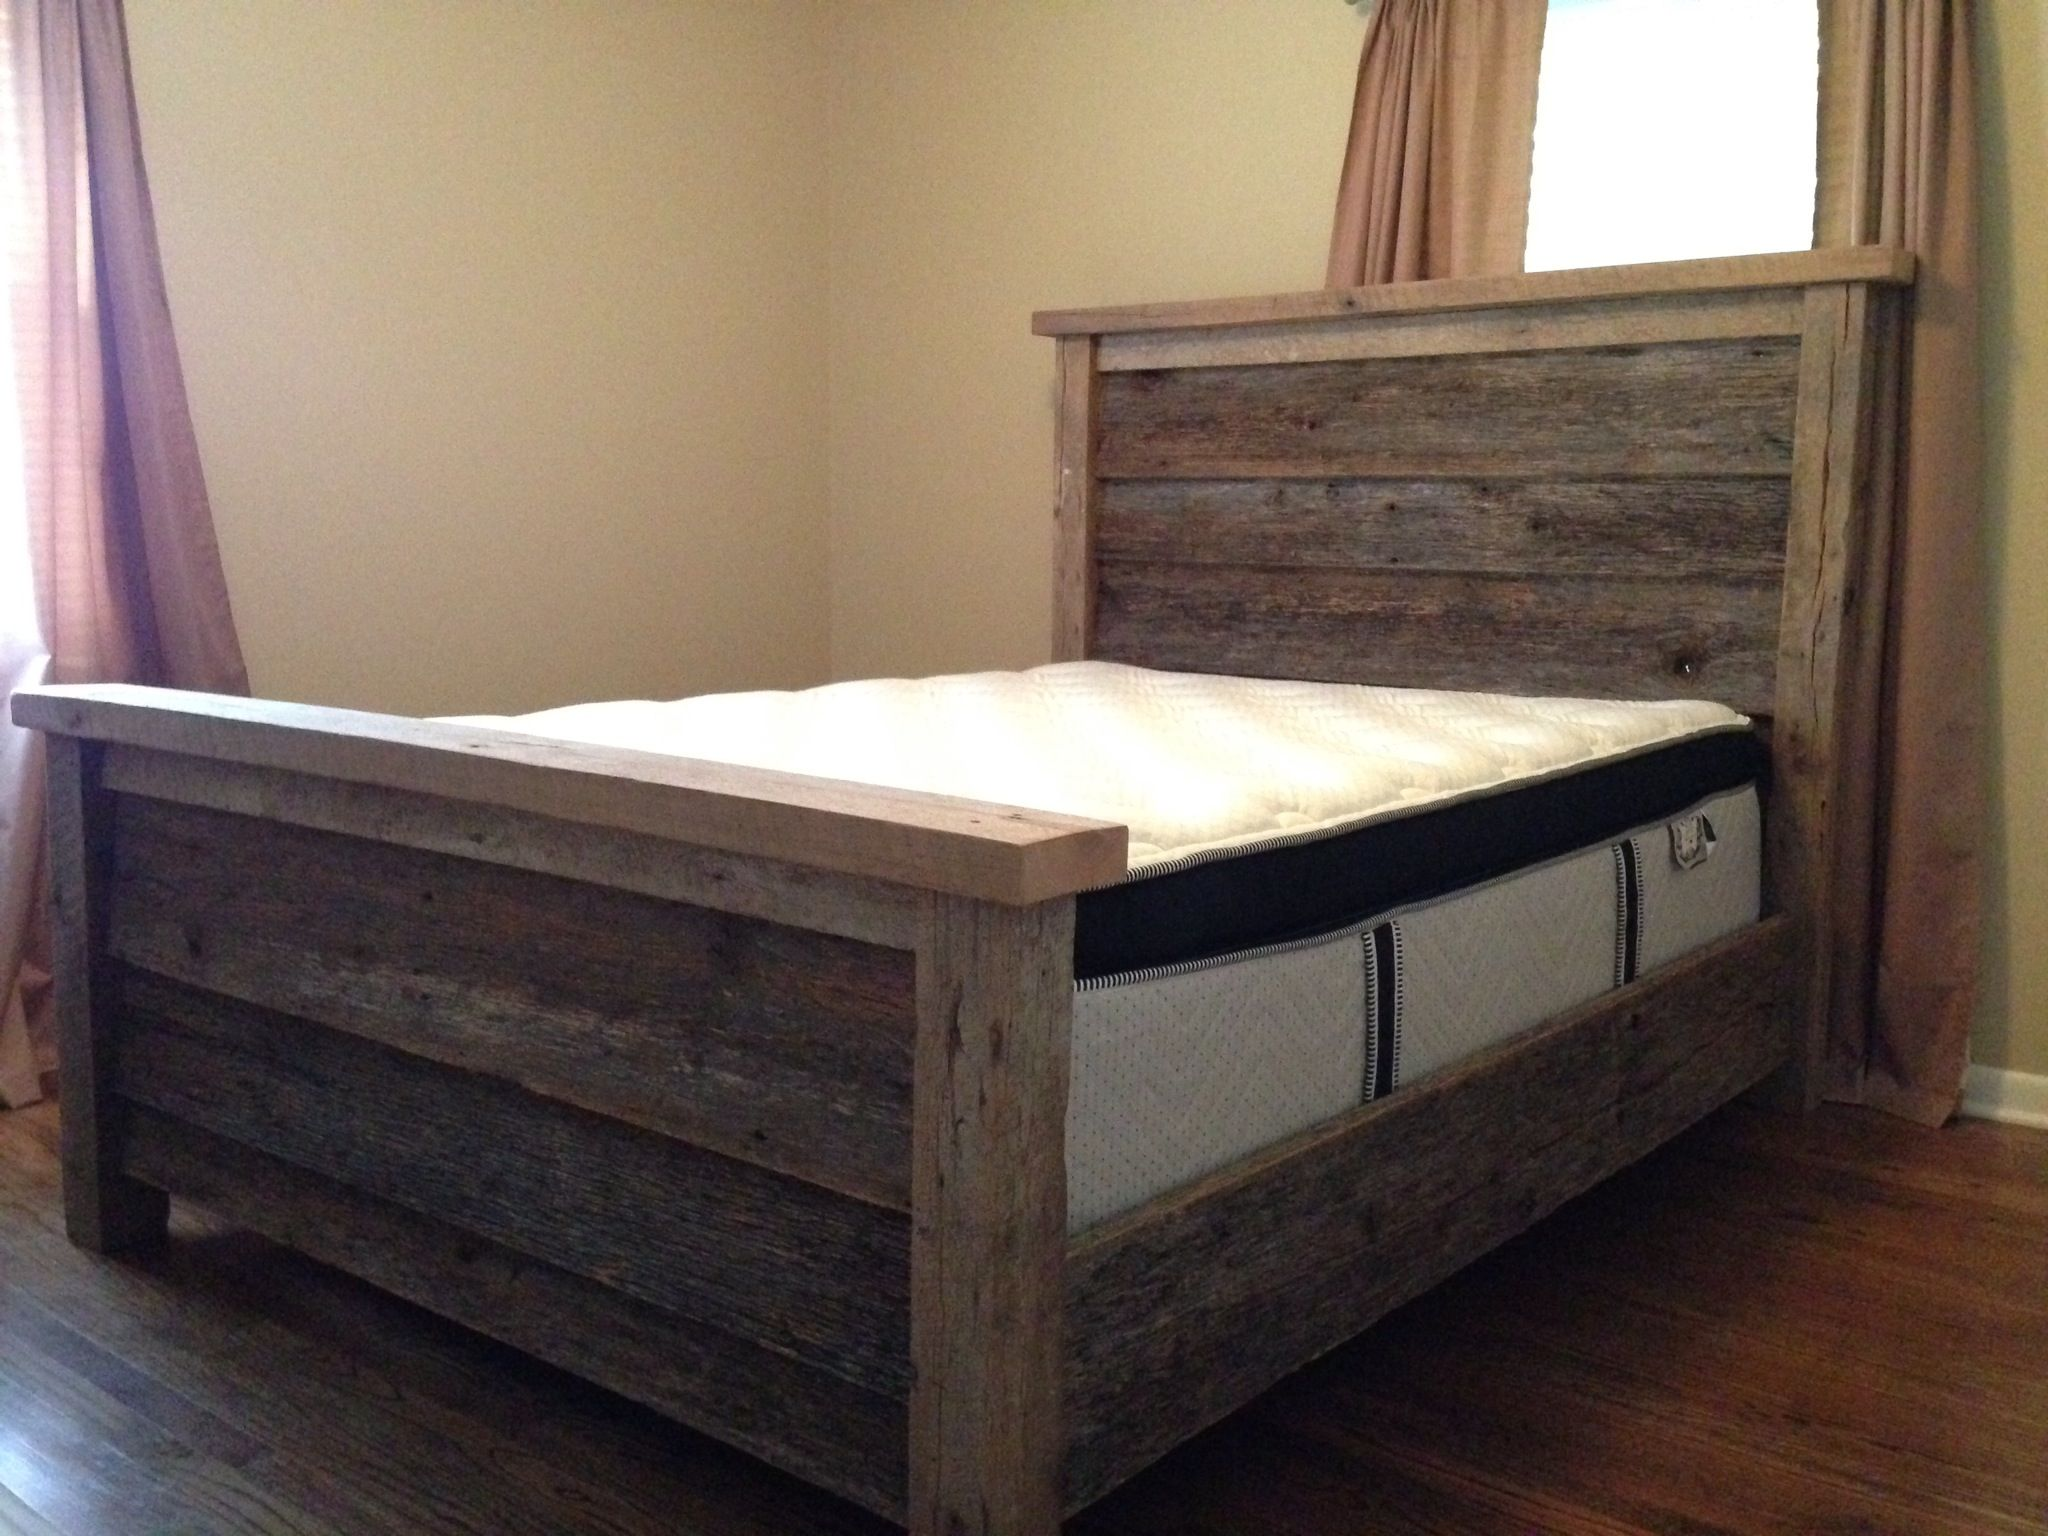 Barn Wood Queen Bed Frame! So amazing! Barn wood Ideas